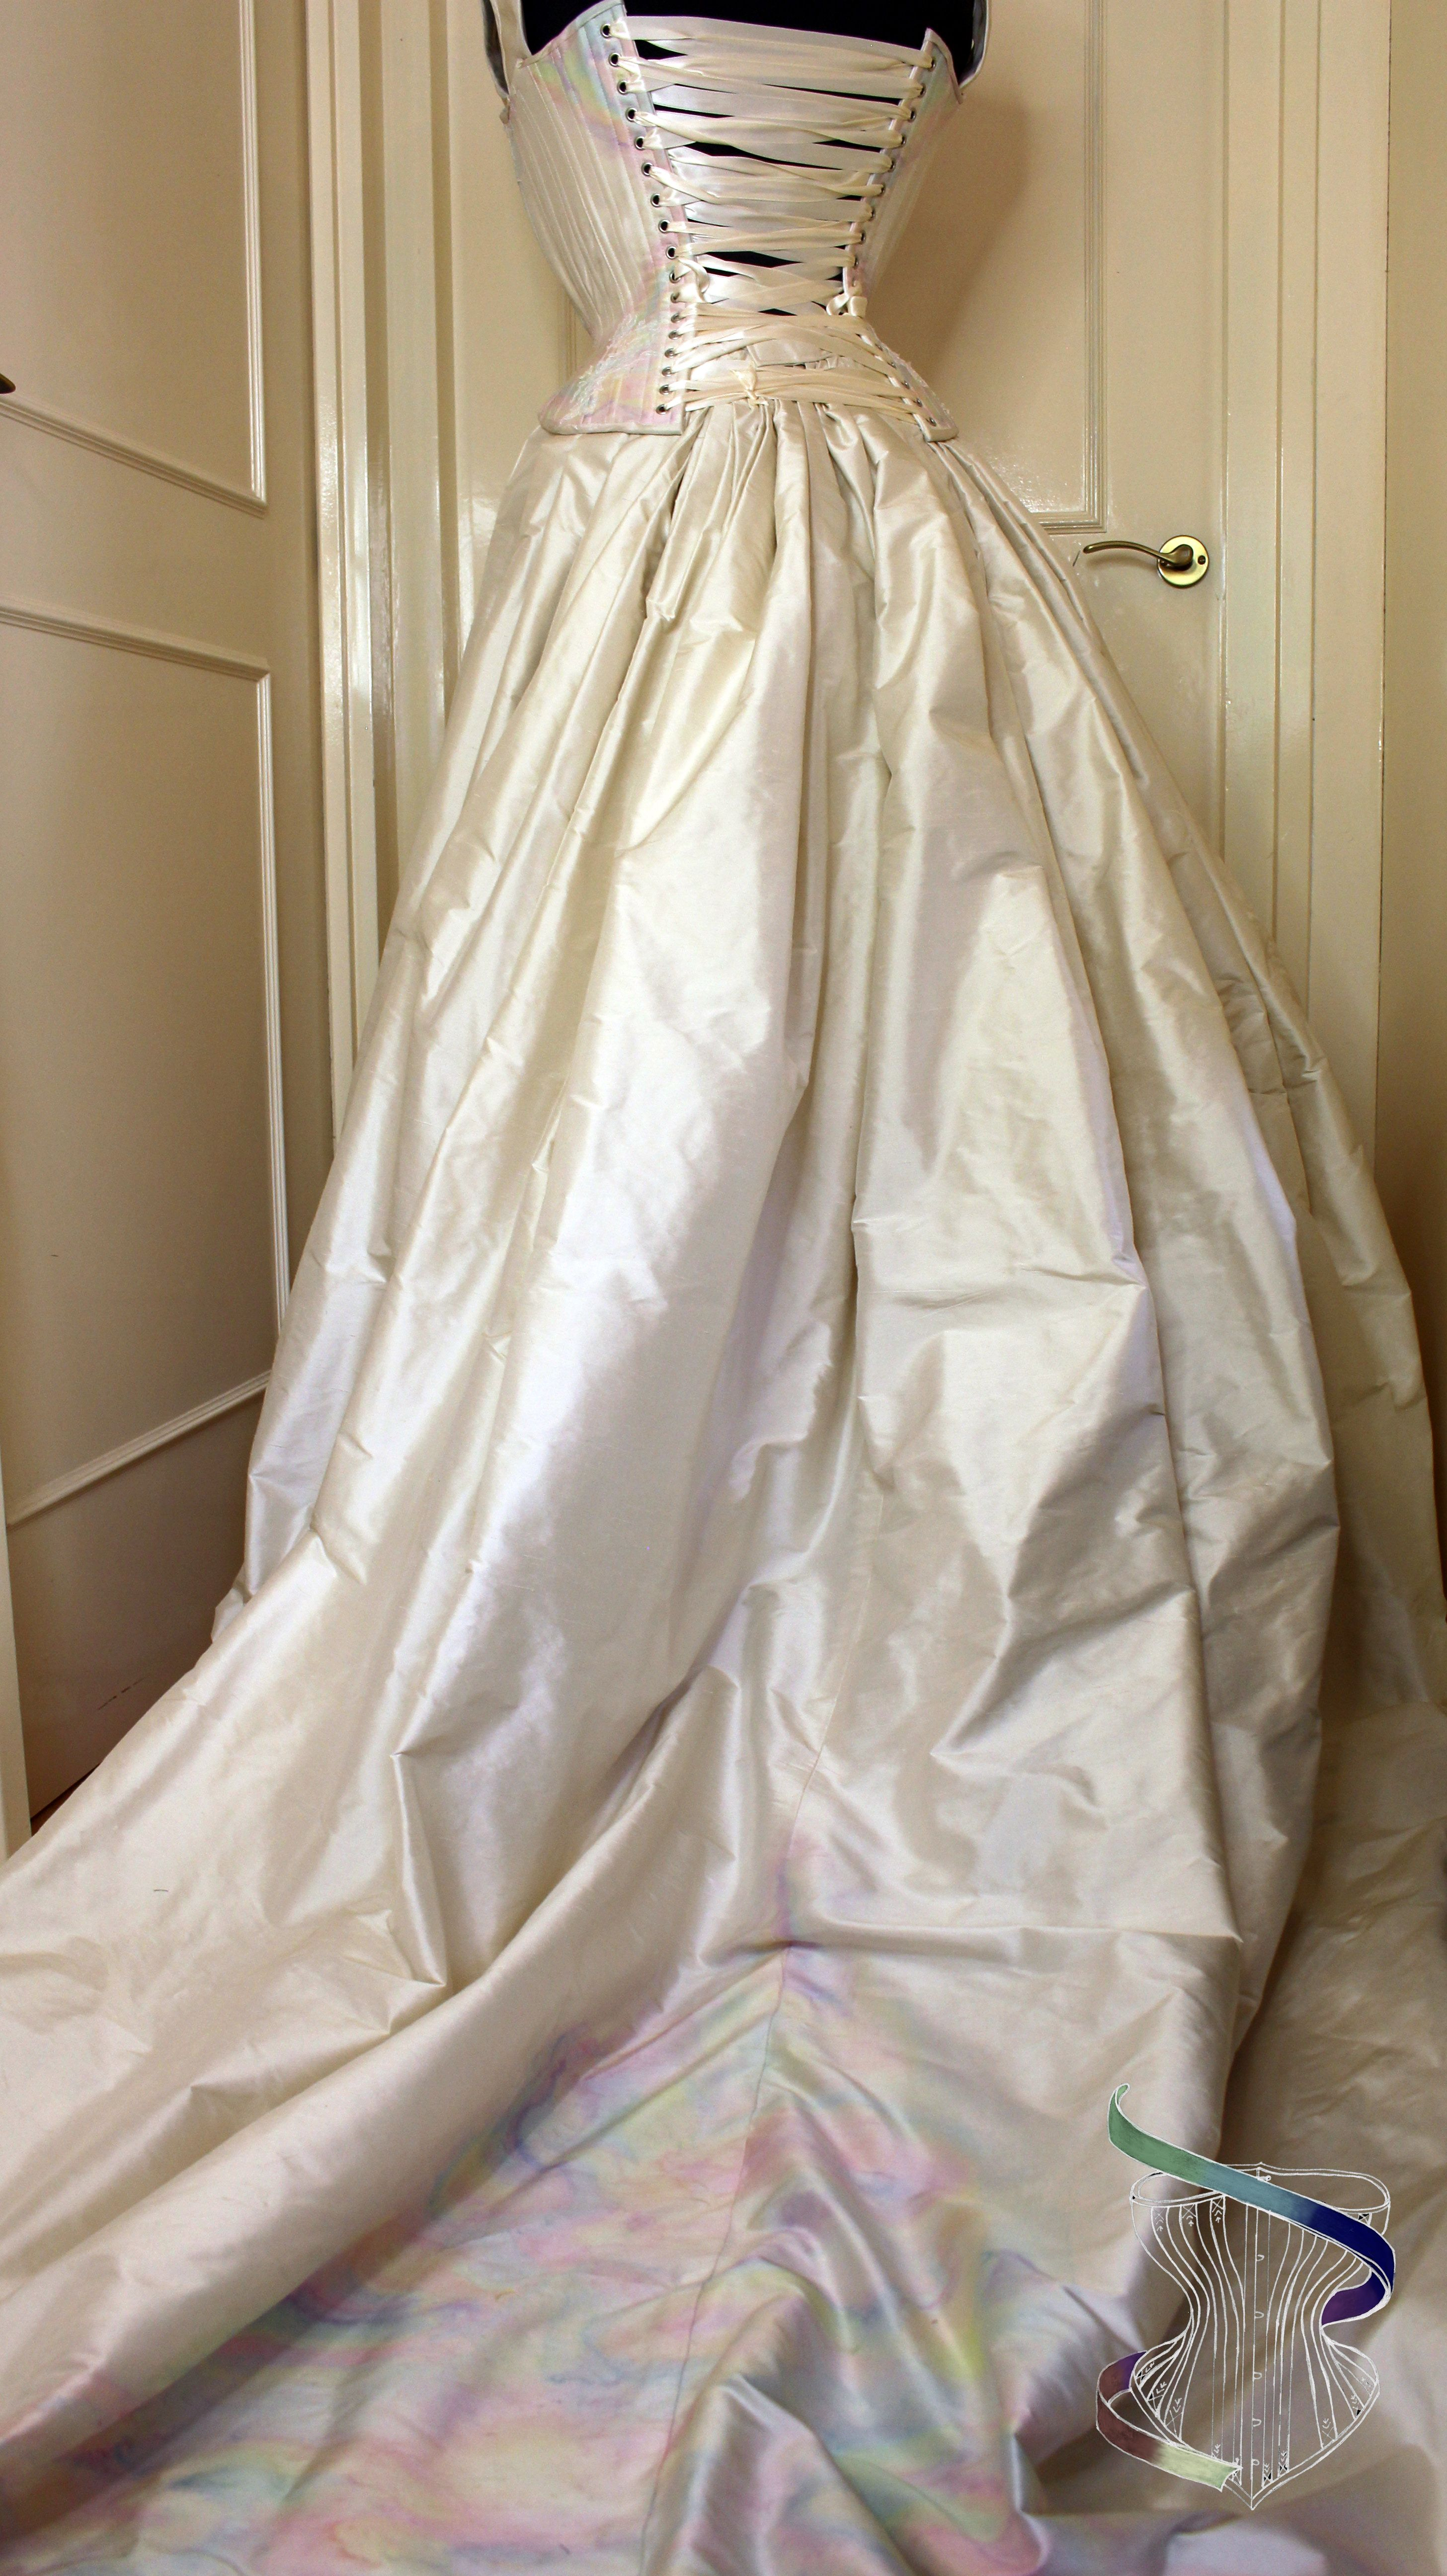 Iridescent Mother Of Pearl Wedding Dress Made Of Hand